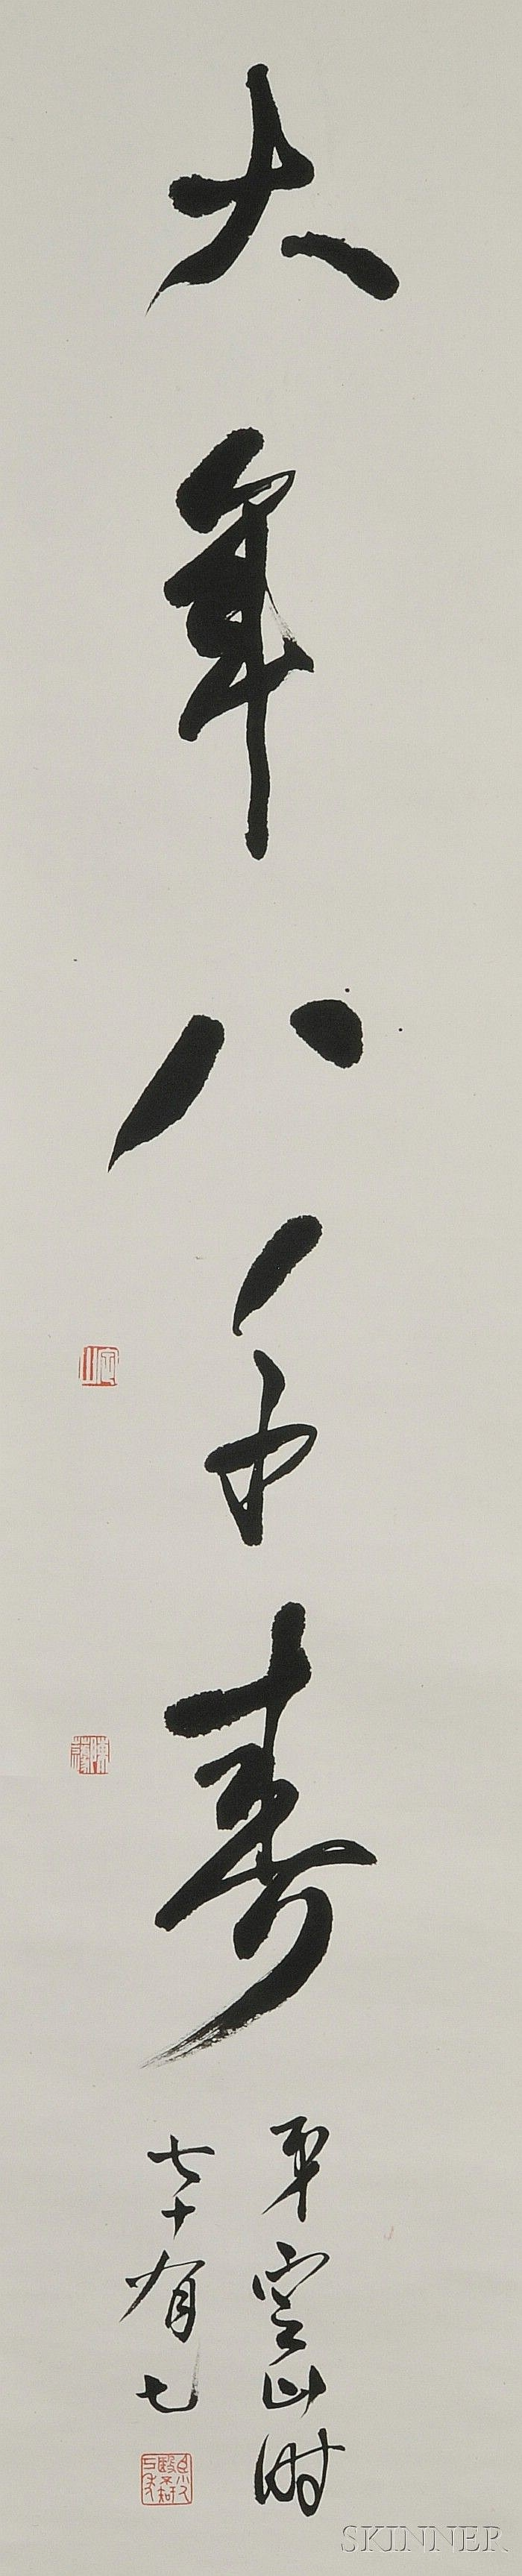 Calligraphy, Chen Dingshan (1896-1989), reads